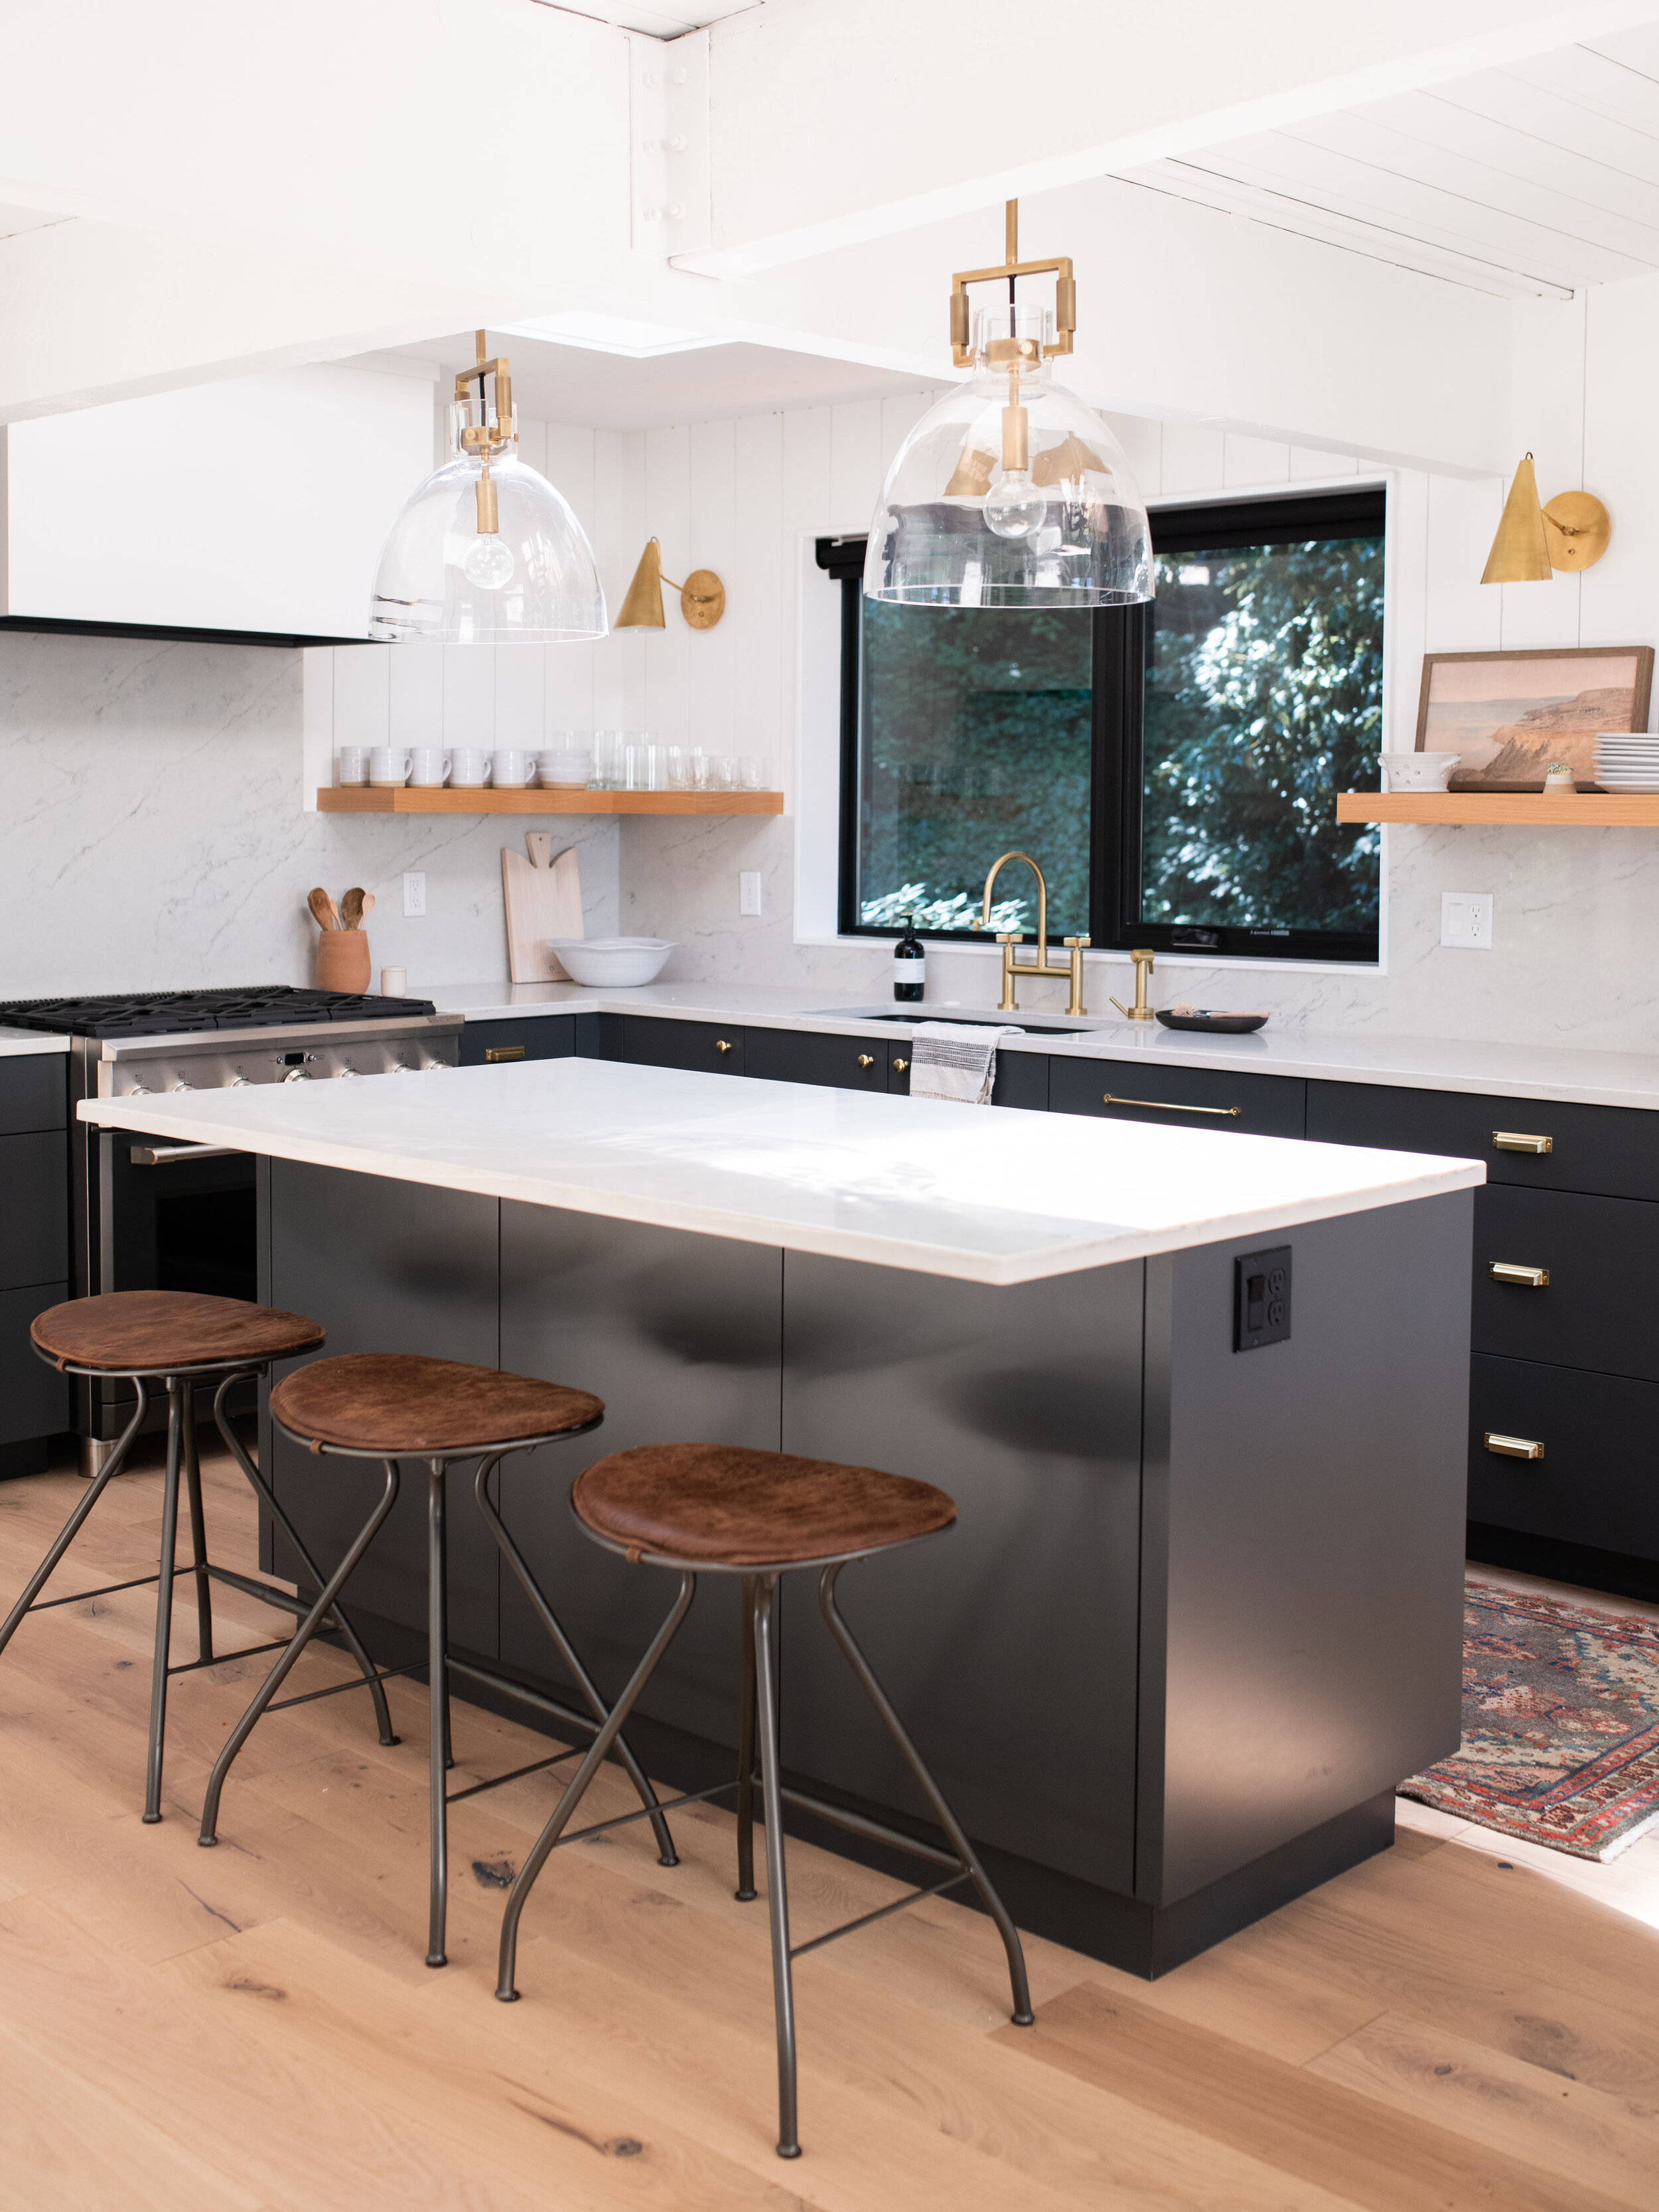 The kitchen was designed to have a modern and minimalistic feel. Clean lines and a concise color palette was the key to success.